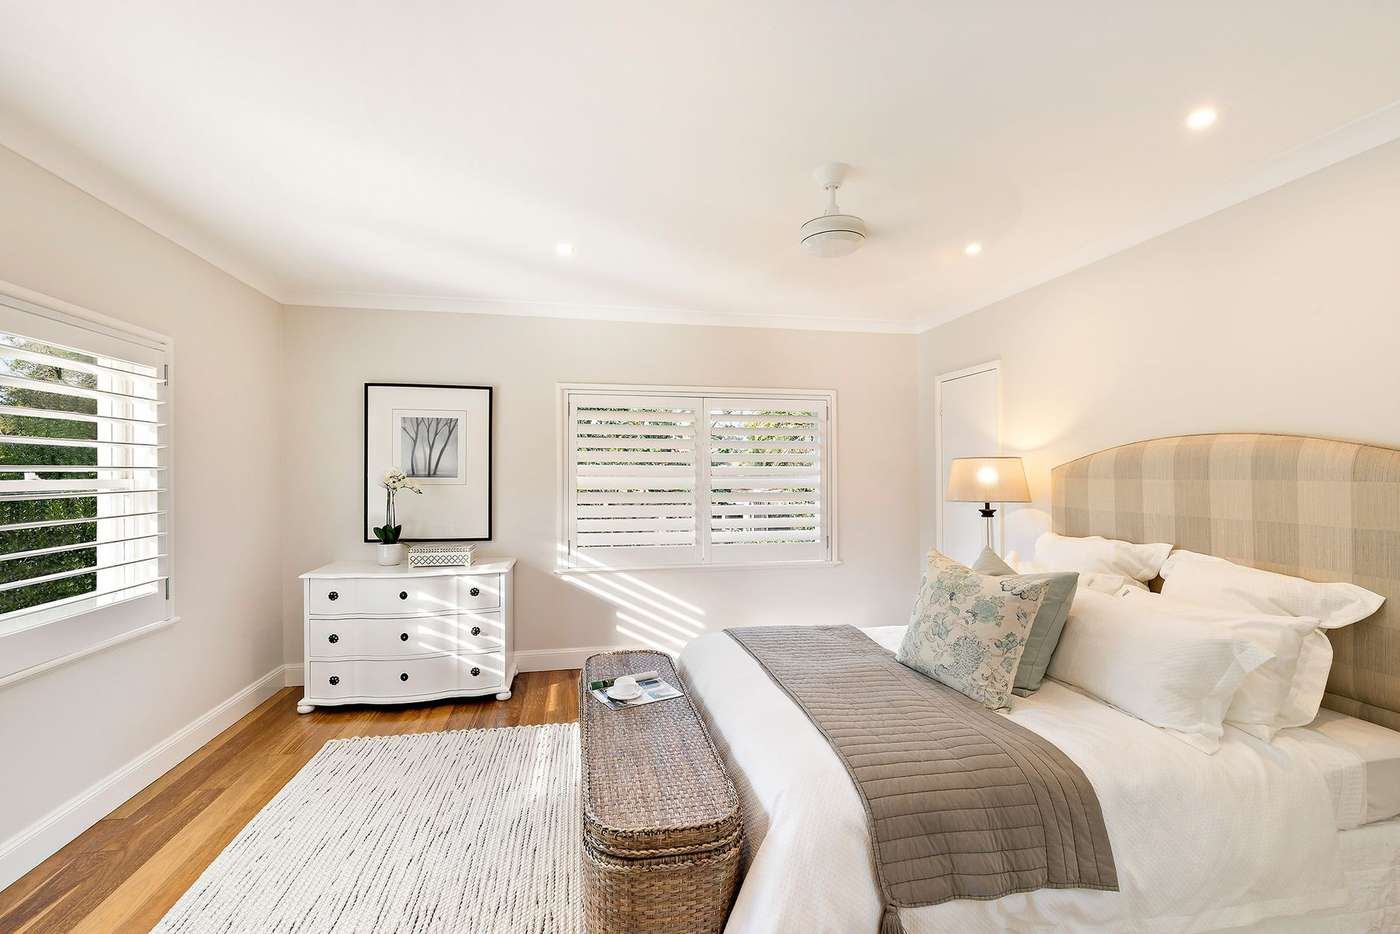 Sixth view of Homely house listing, 27 Selwyn Street, Pymble NSW 2073